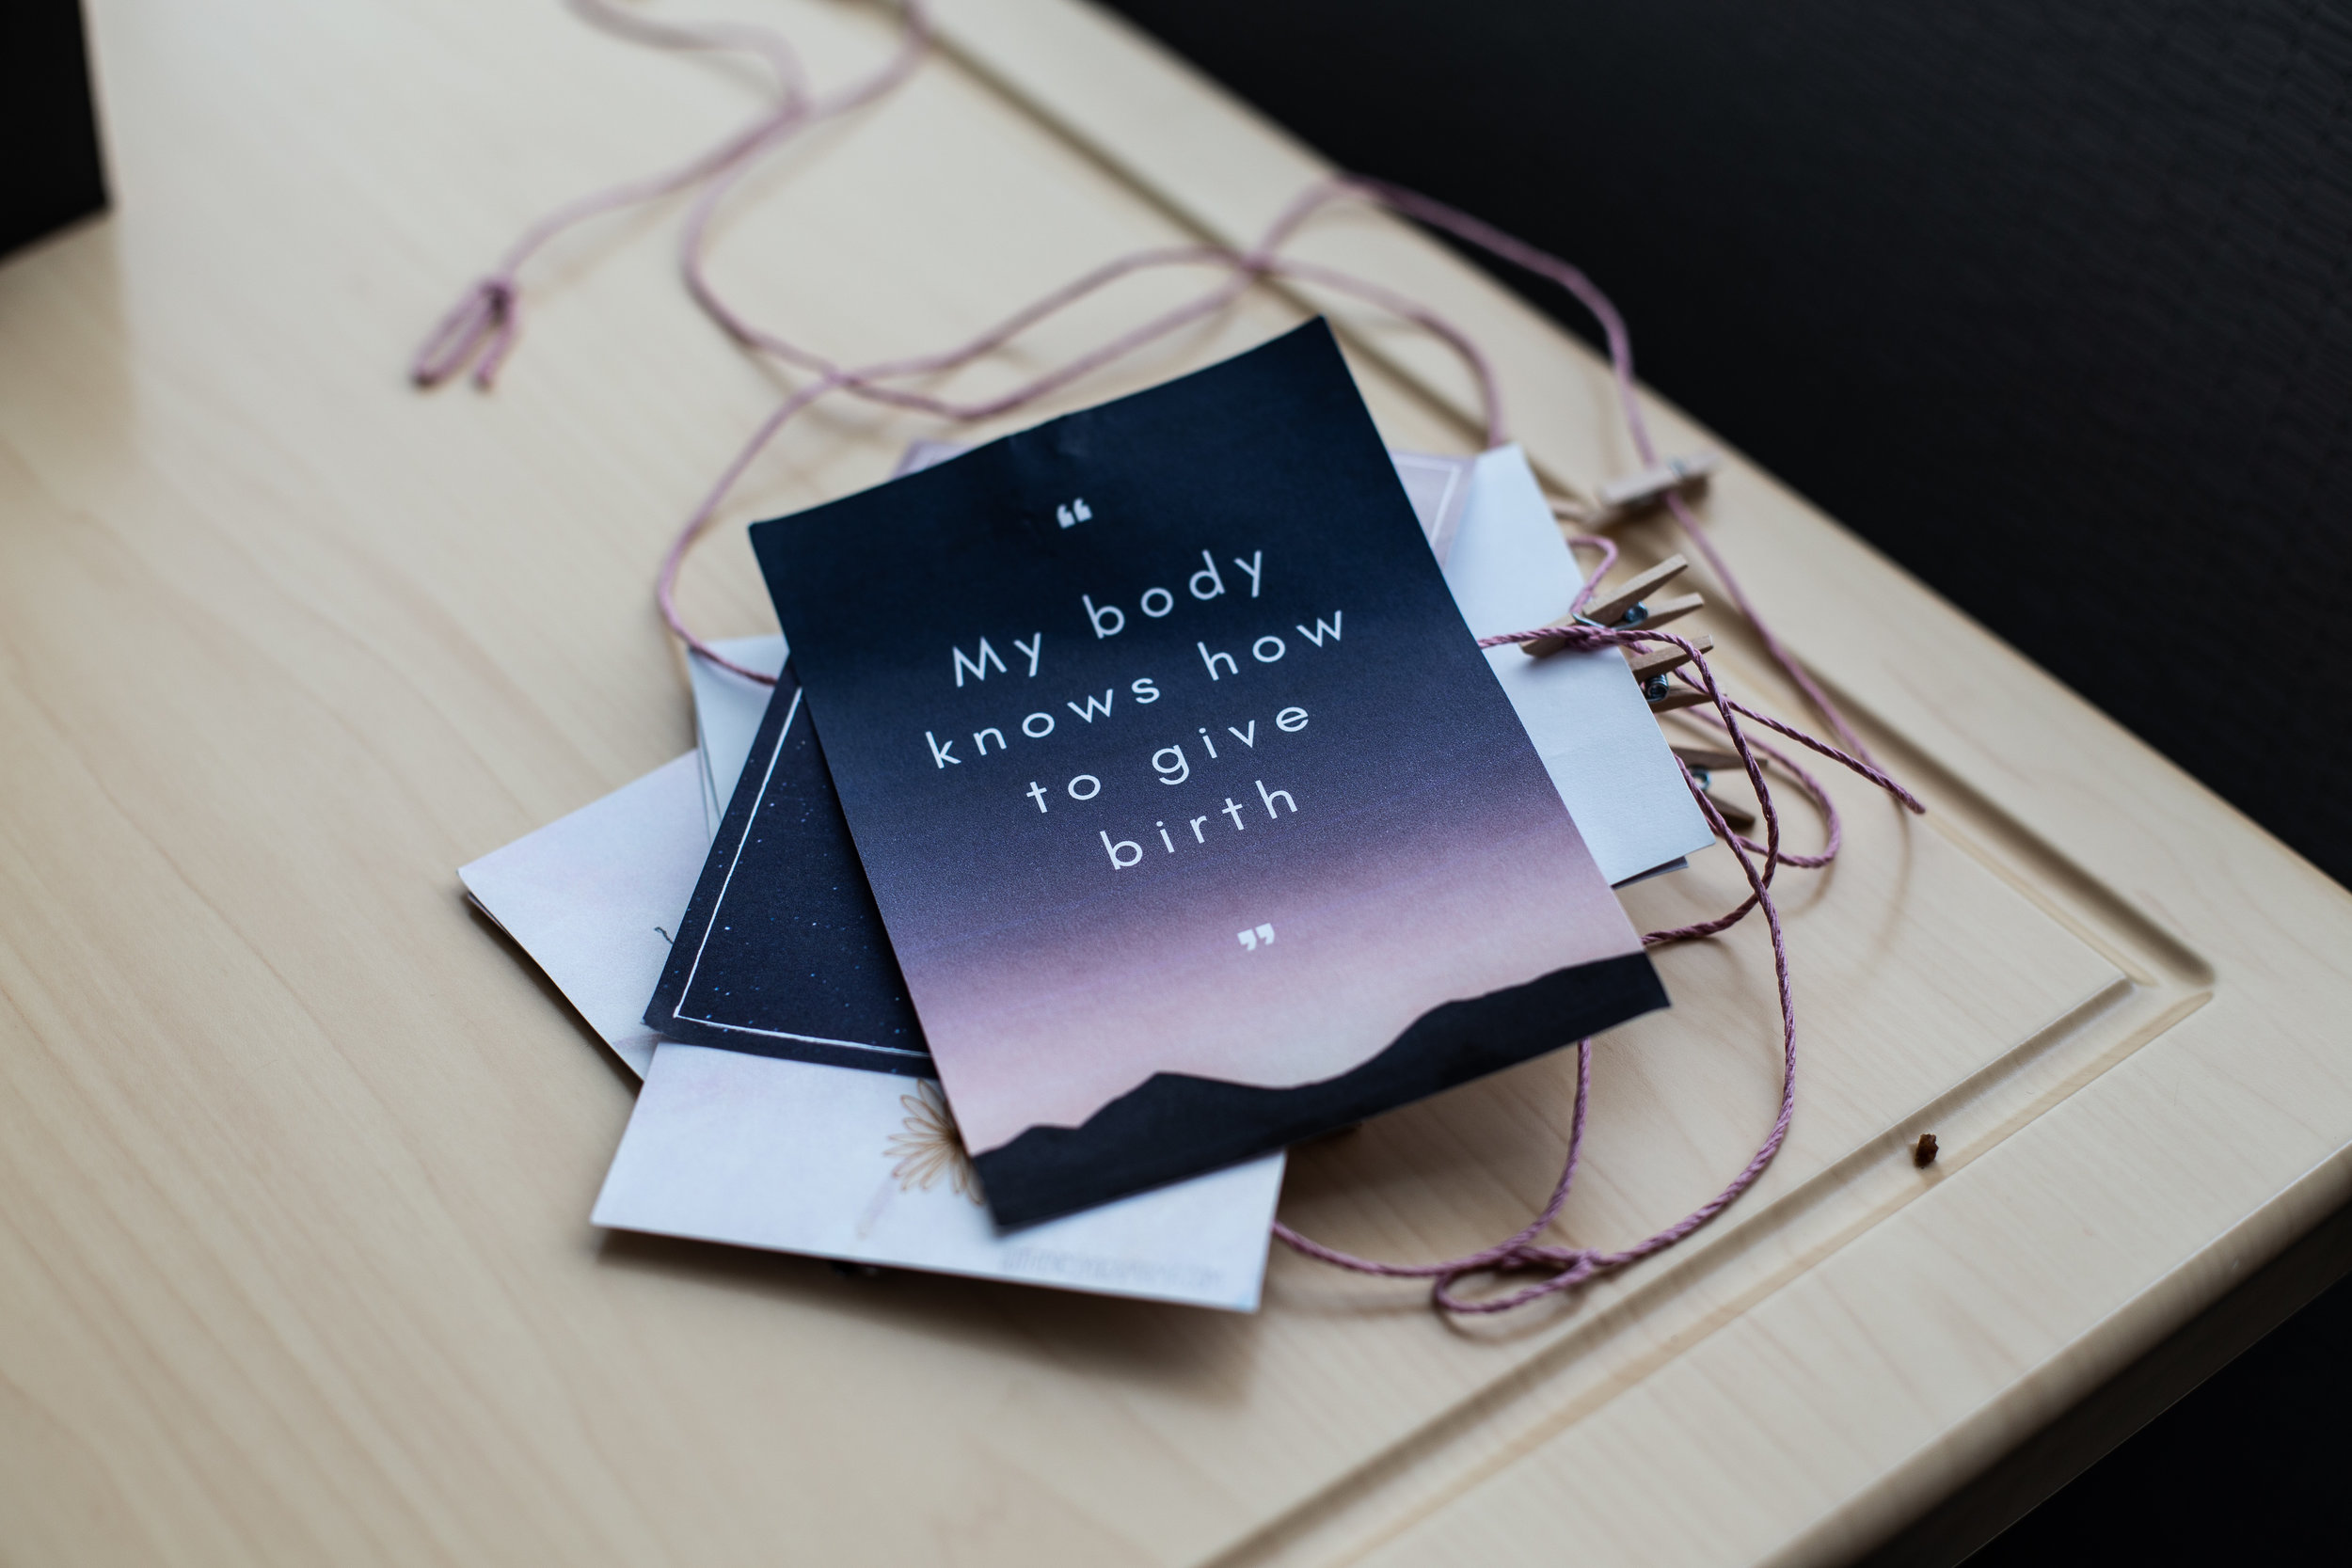 Birth affirmation cards lying on a table.